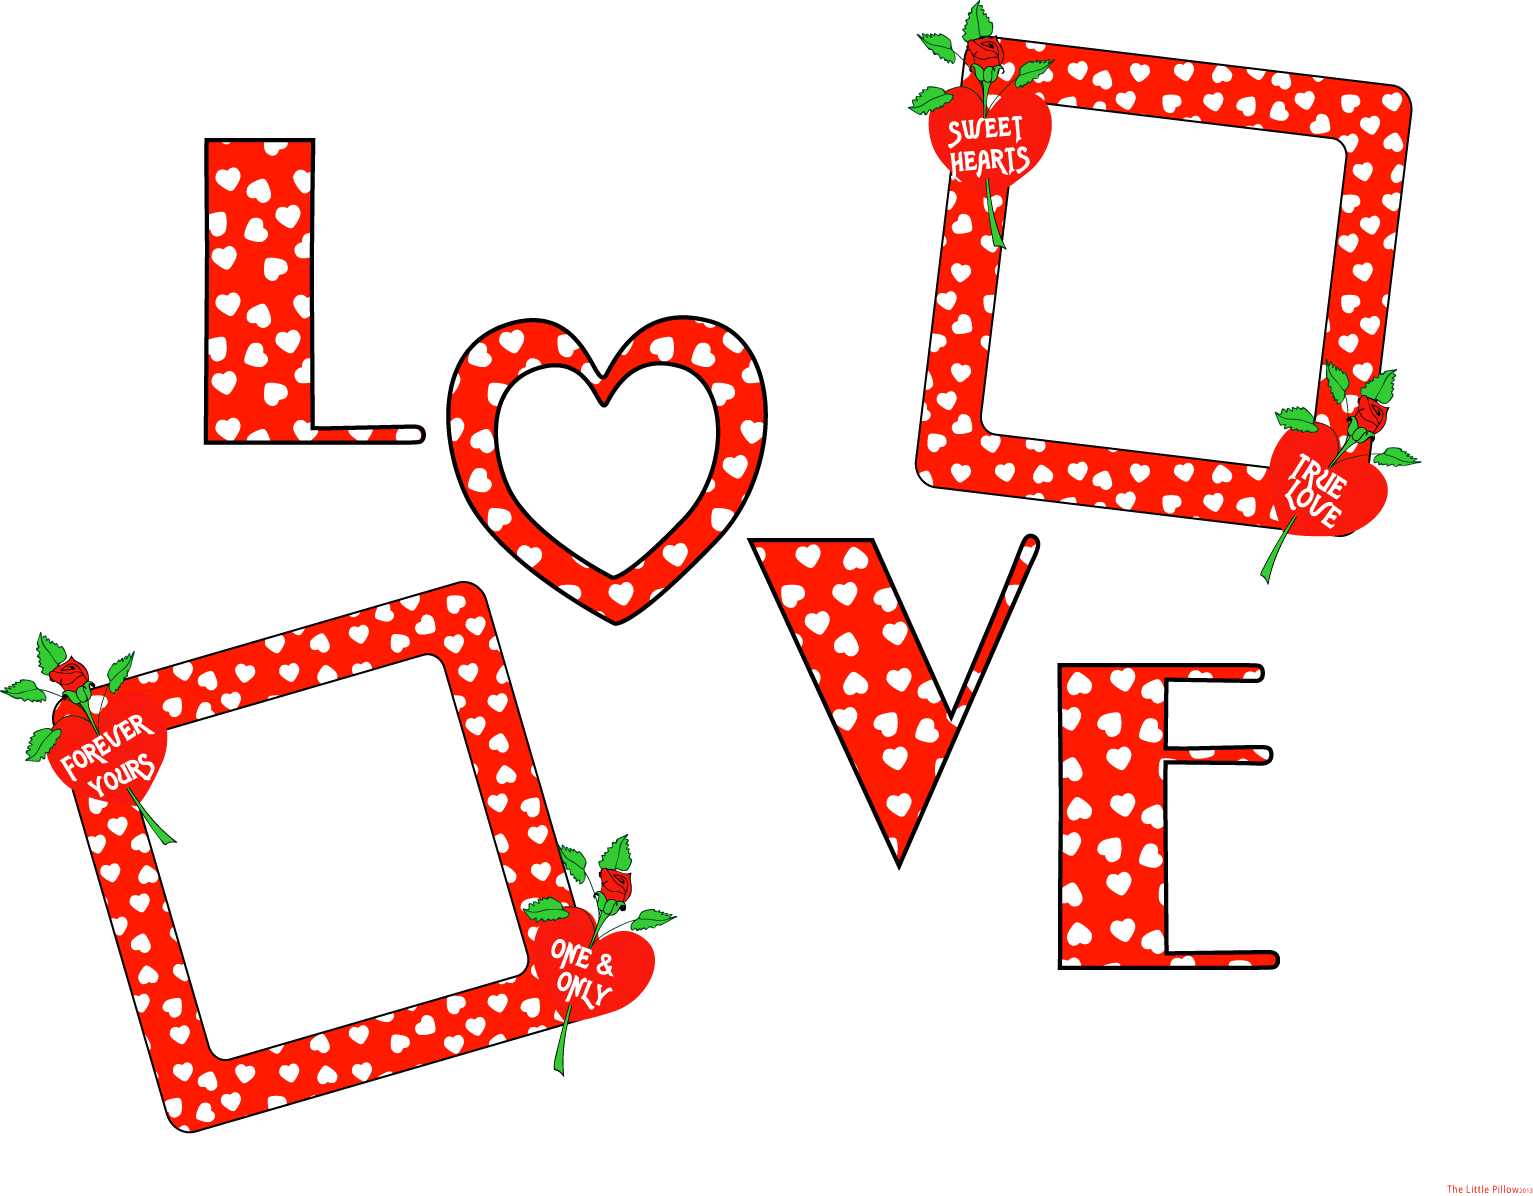 Happy Valentines Day Love PNG Transparent Image.